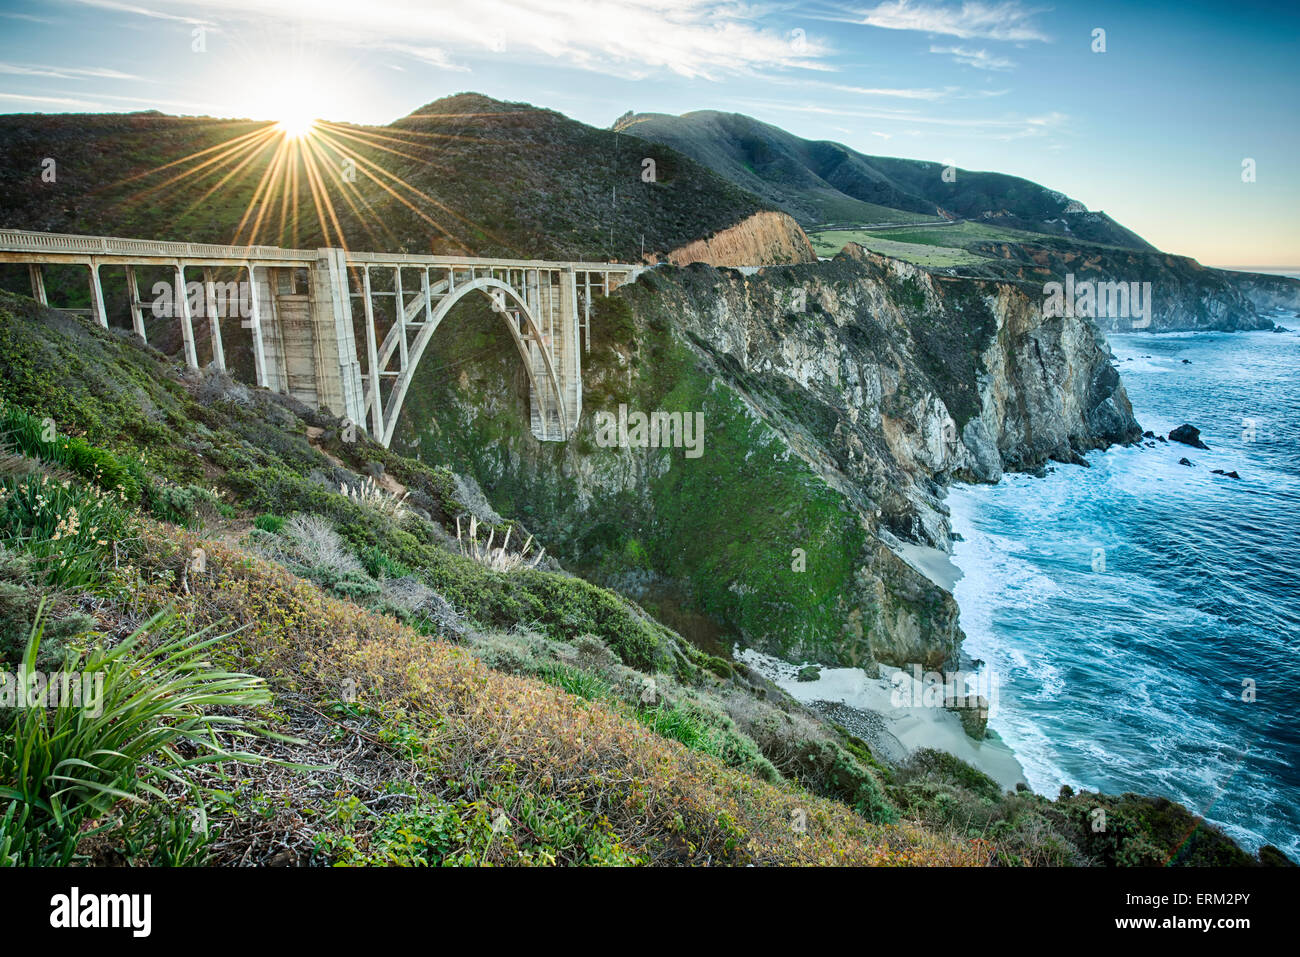 Images of the California Coastline from Mendocino to the San Mateo beaches and Big Sur - Stock Image